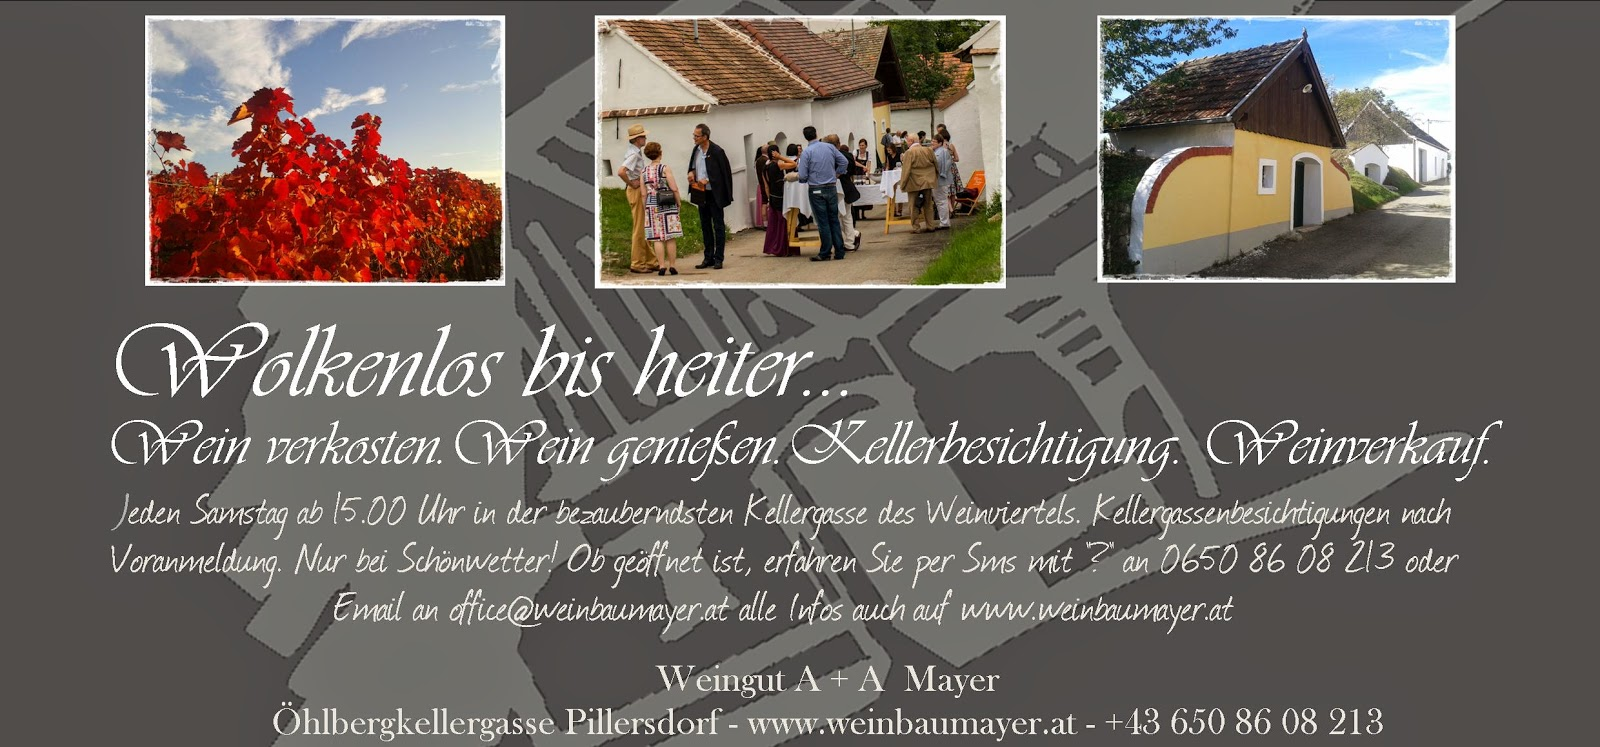 http://www.weinbaumayer.at/